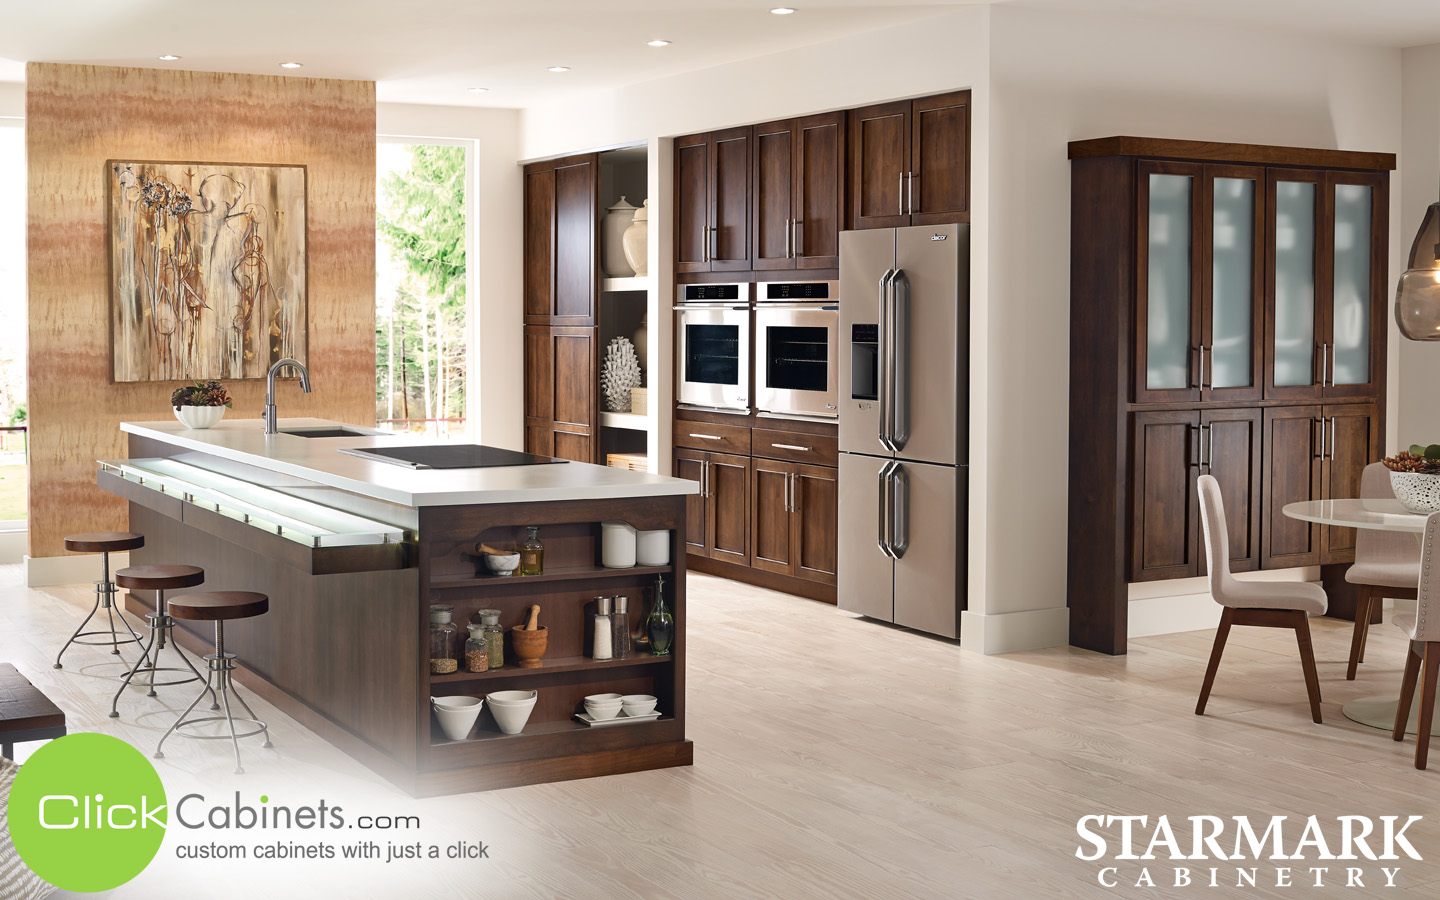 click cabinets 2000 certificate for kitchen cabinets click cabinets 2000 certificate for kitchen cabinets